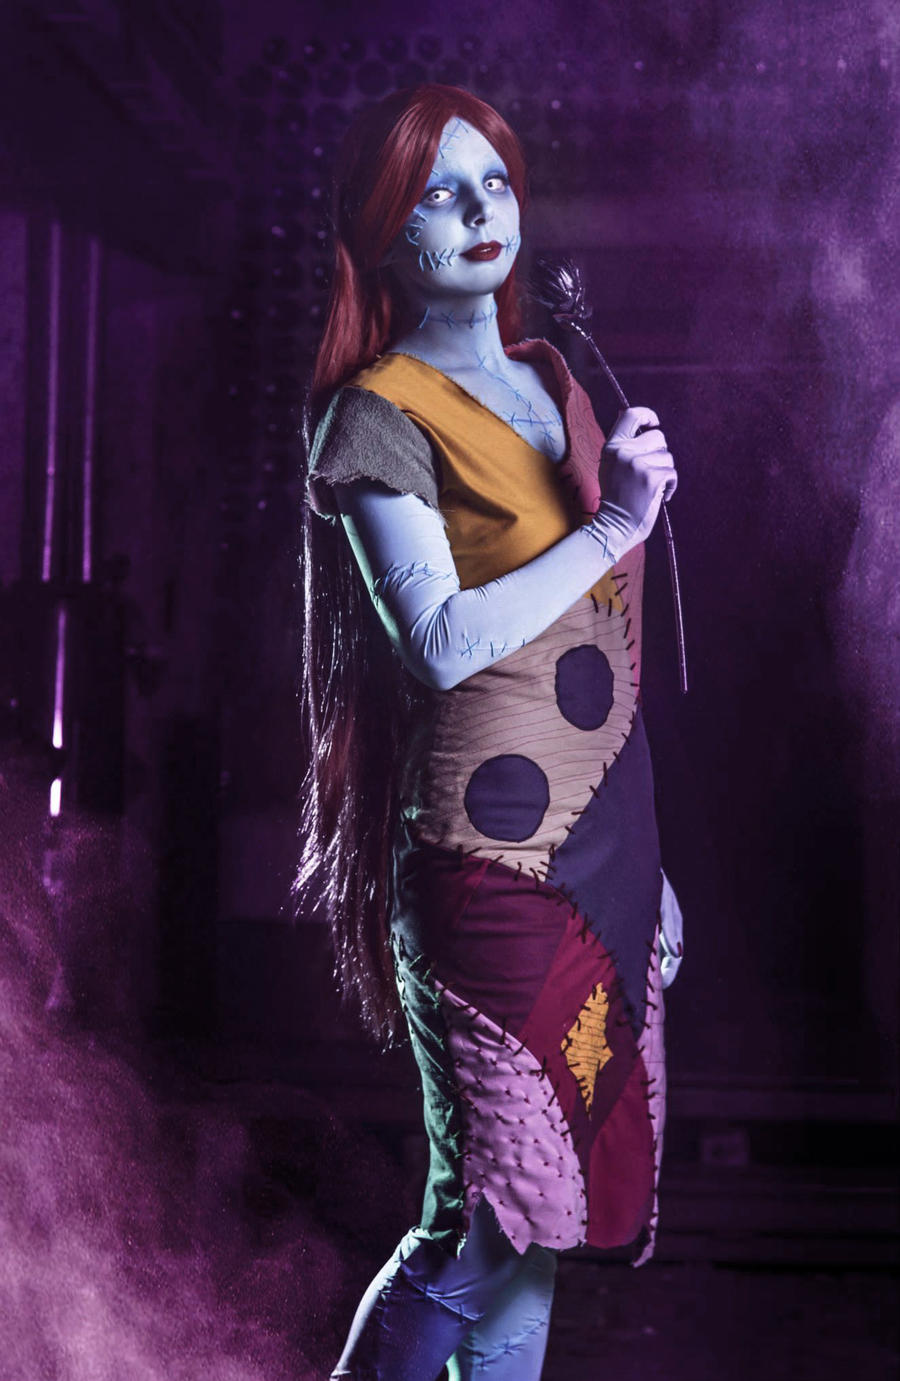 The Nightmare Before Christmas Sally Costume